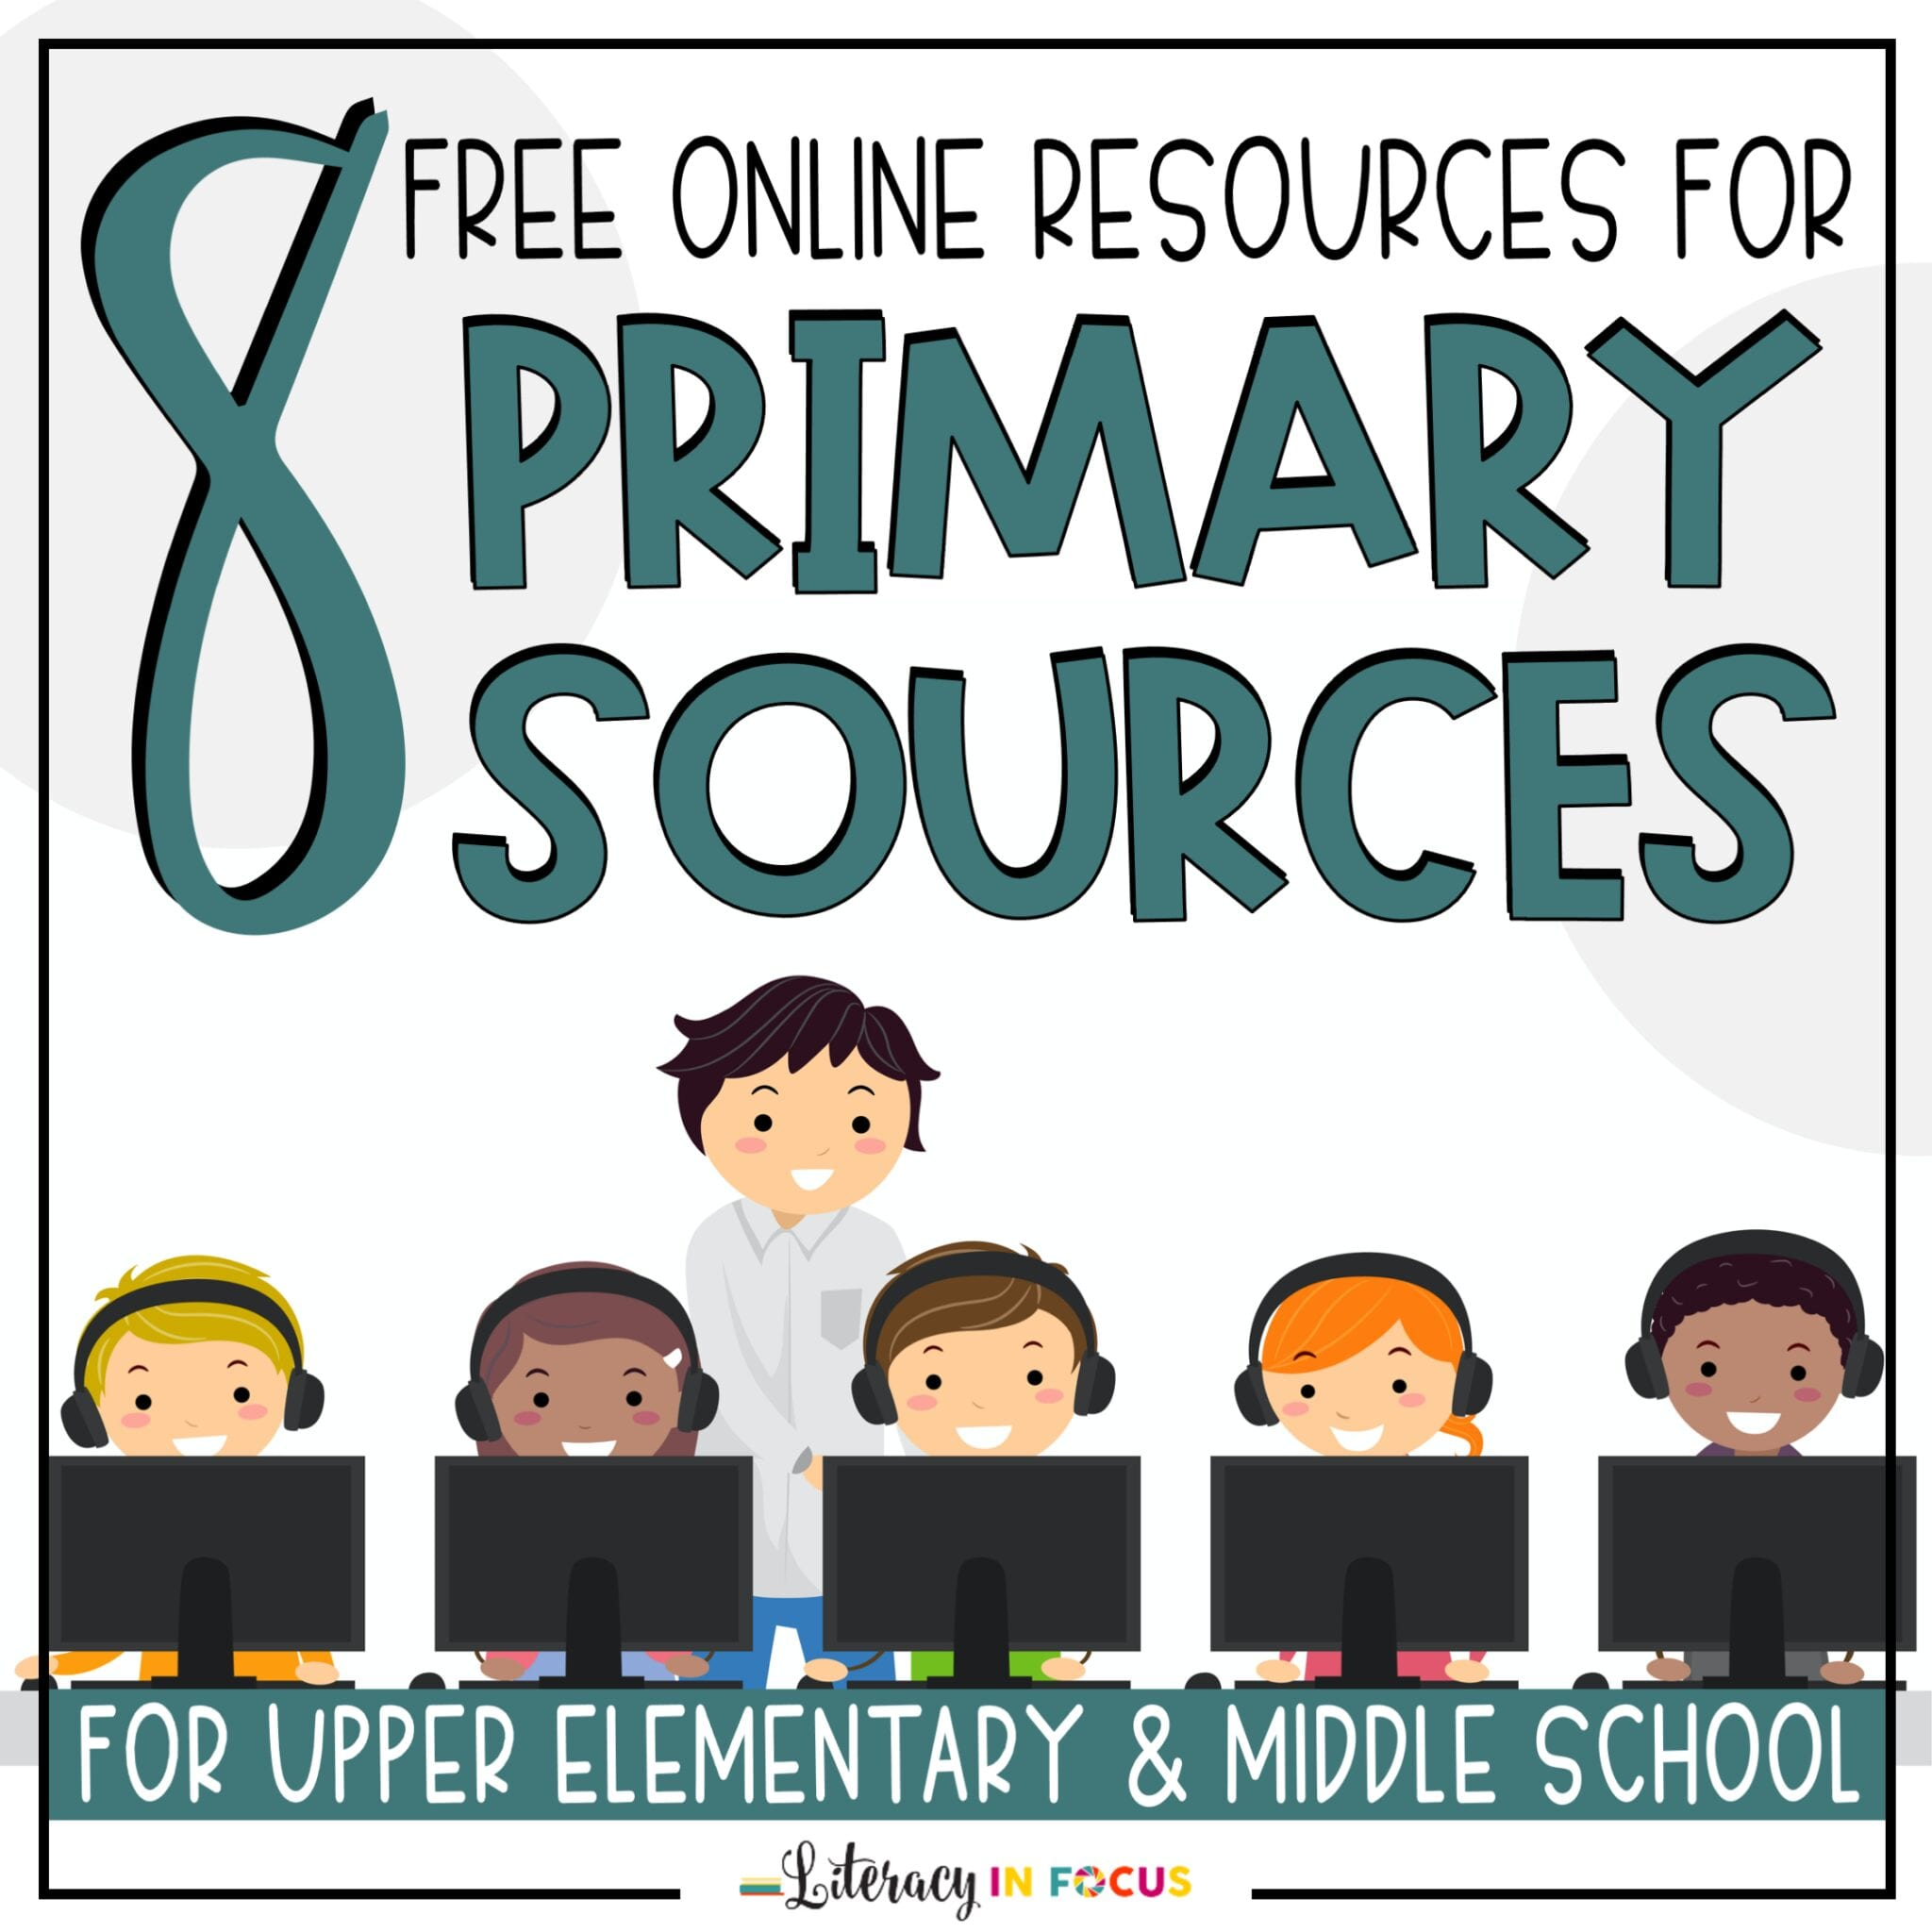 Free Websites for Primary Sources for Students